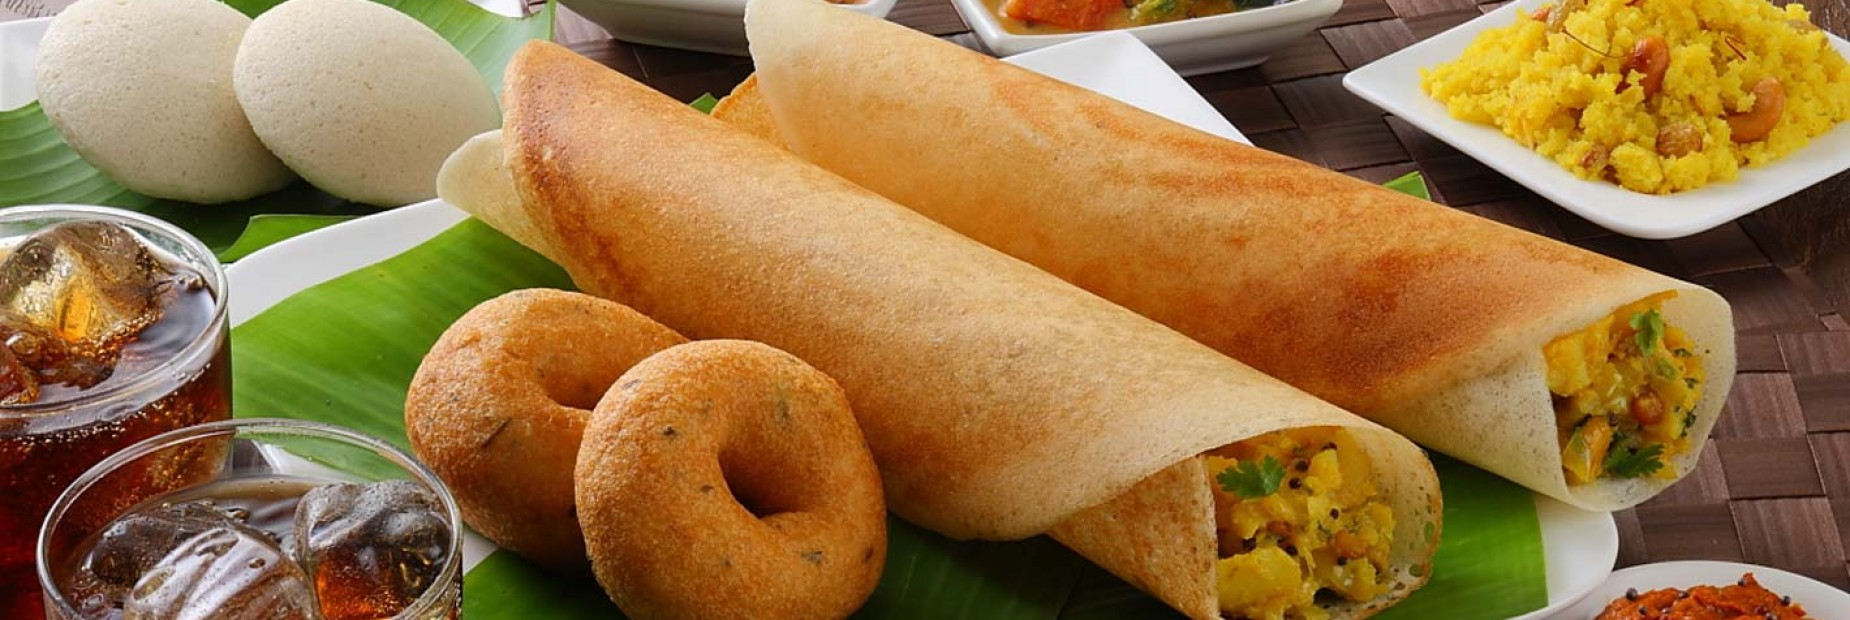 dosa indian dish